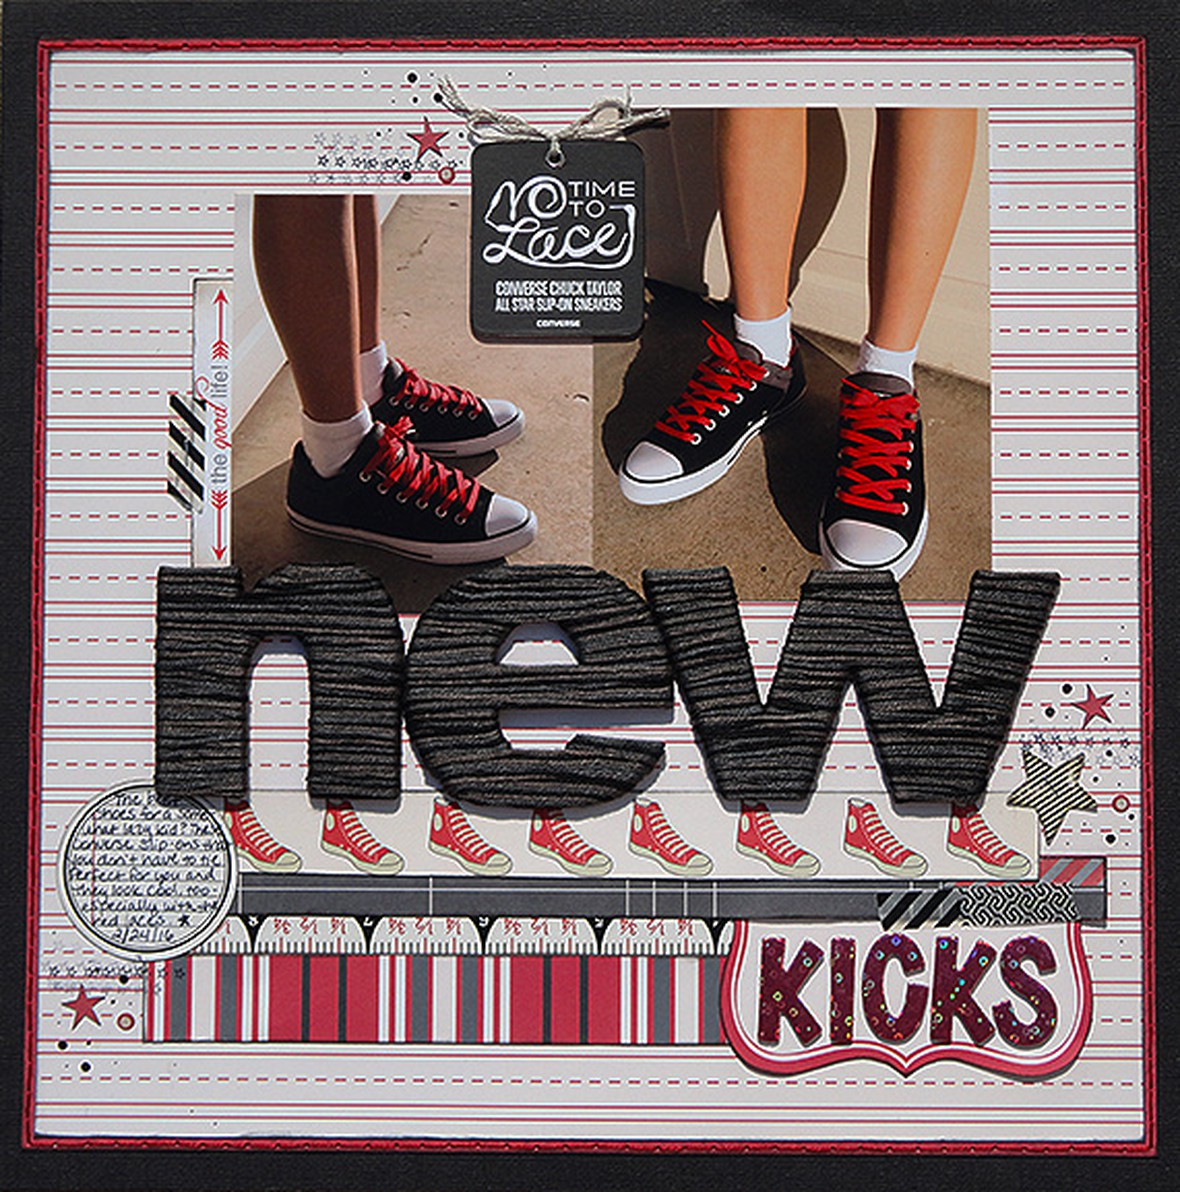 New kicks original